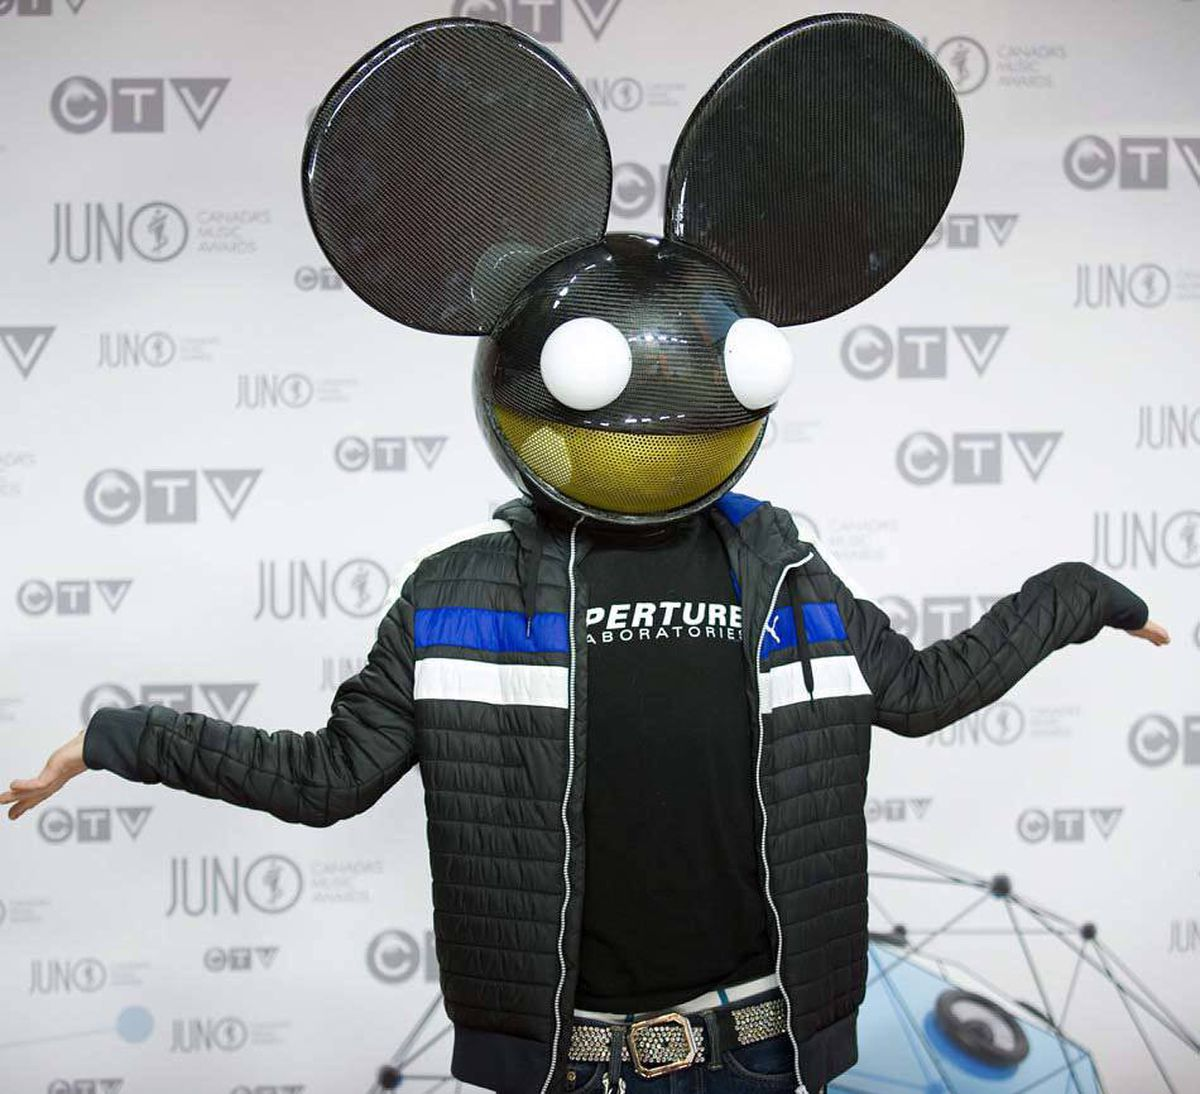 The unmysterious mouse-helmetted musician Deadmau5 perpetuates his Tired5chtick at the Juno Awards in Ottawa on Sunday.